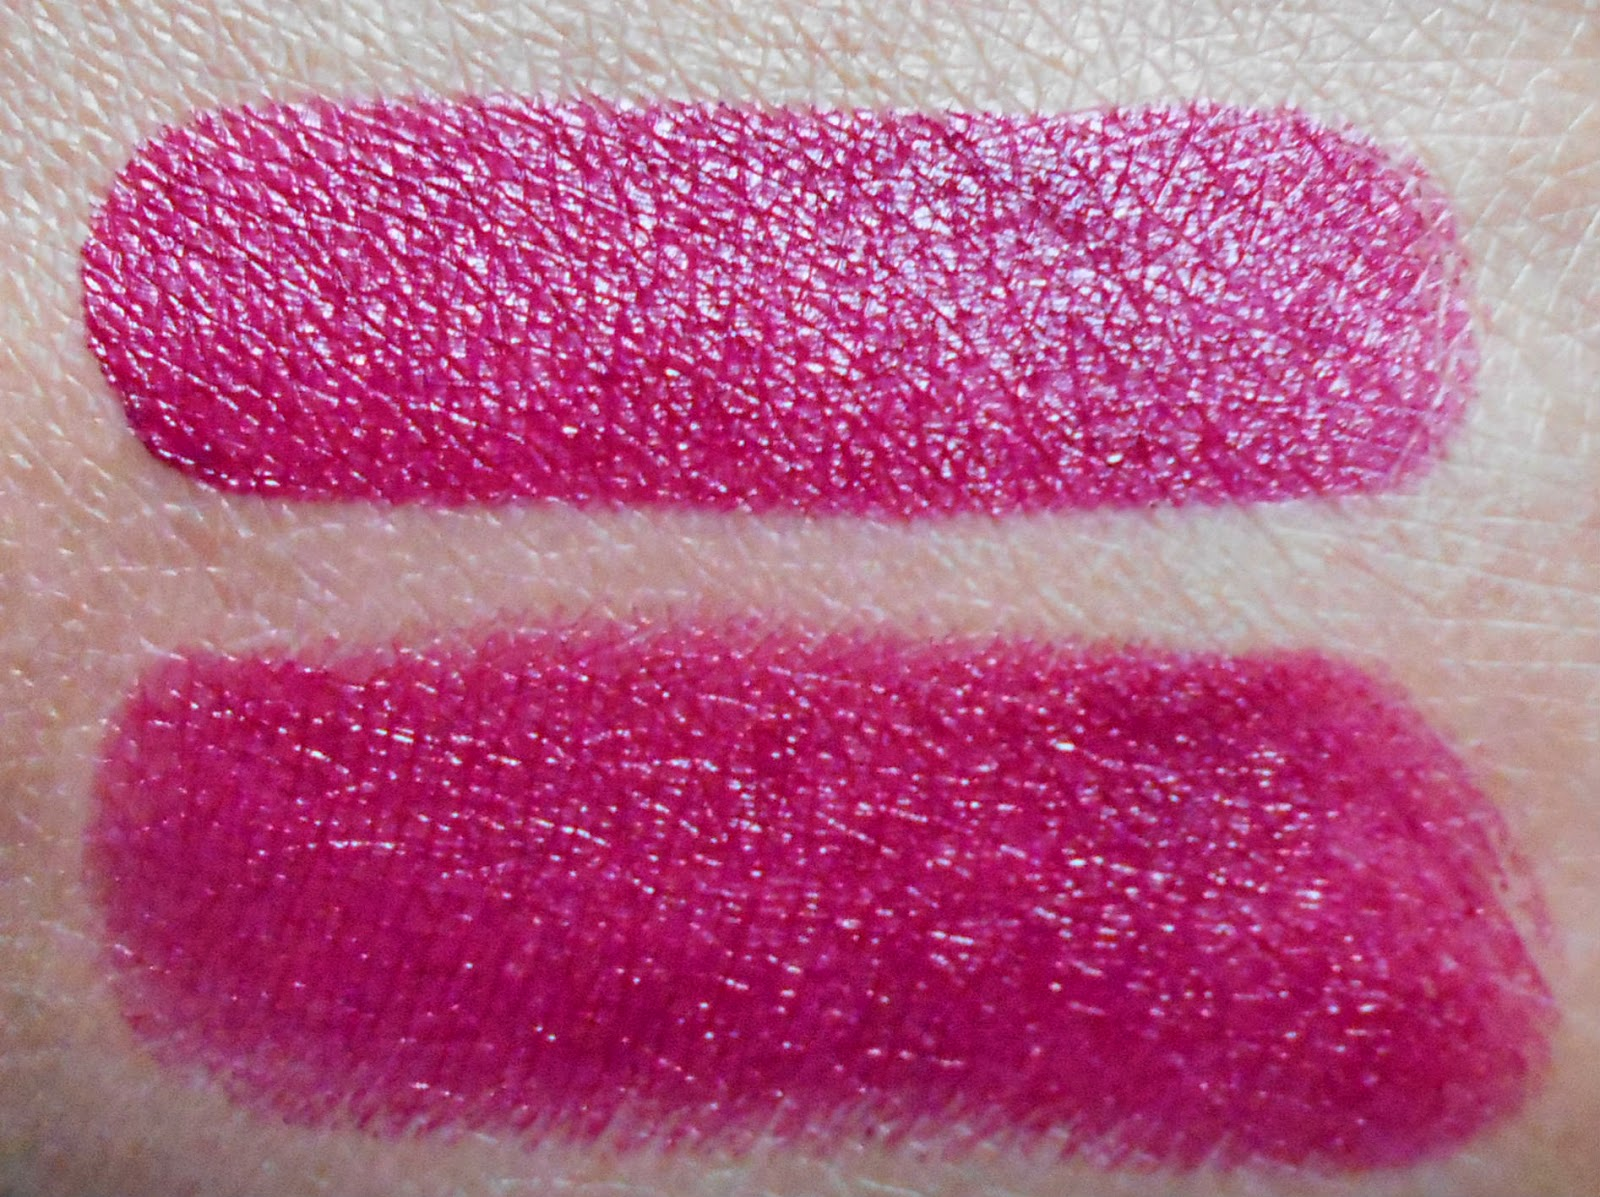 Drugstore Dupe of Mac Rebel Lipstick